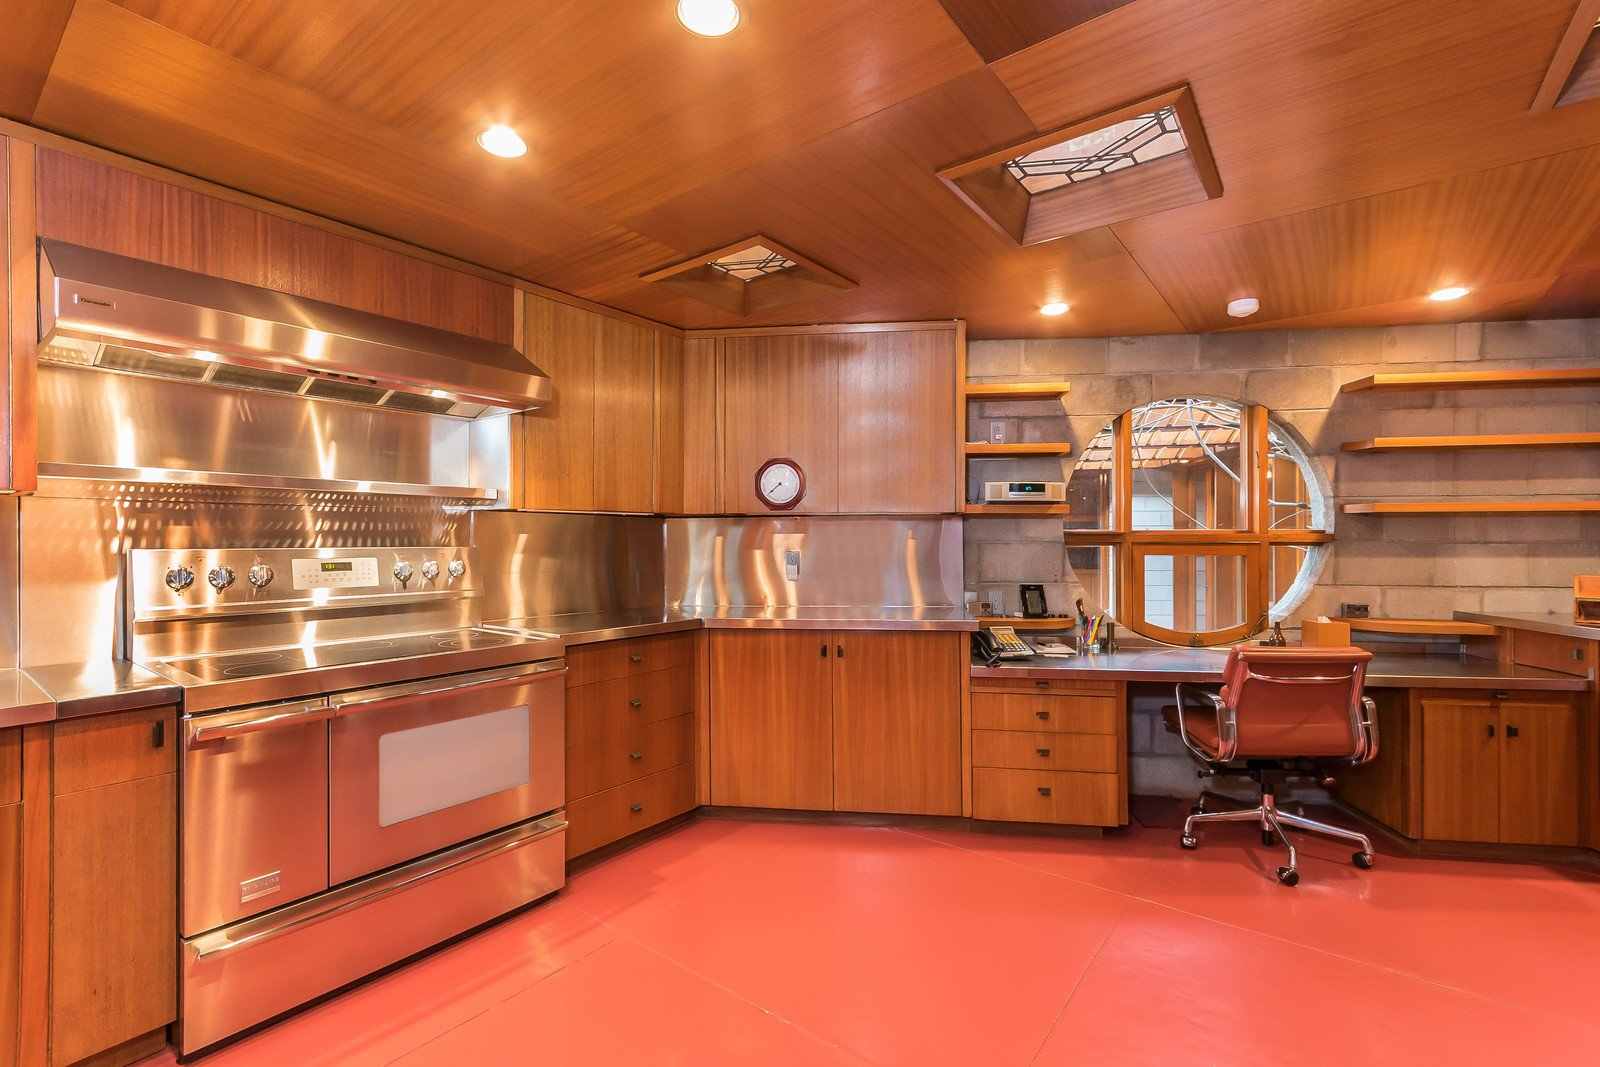 Though the appliances have been updated, the rest of the kitchen is original, including the cabinets, piano hinges, and the painted glass windows on the ceiling.